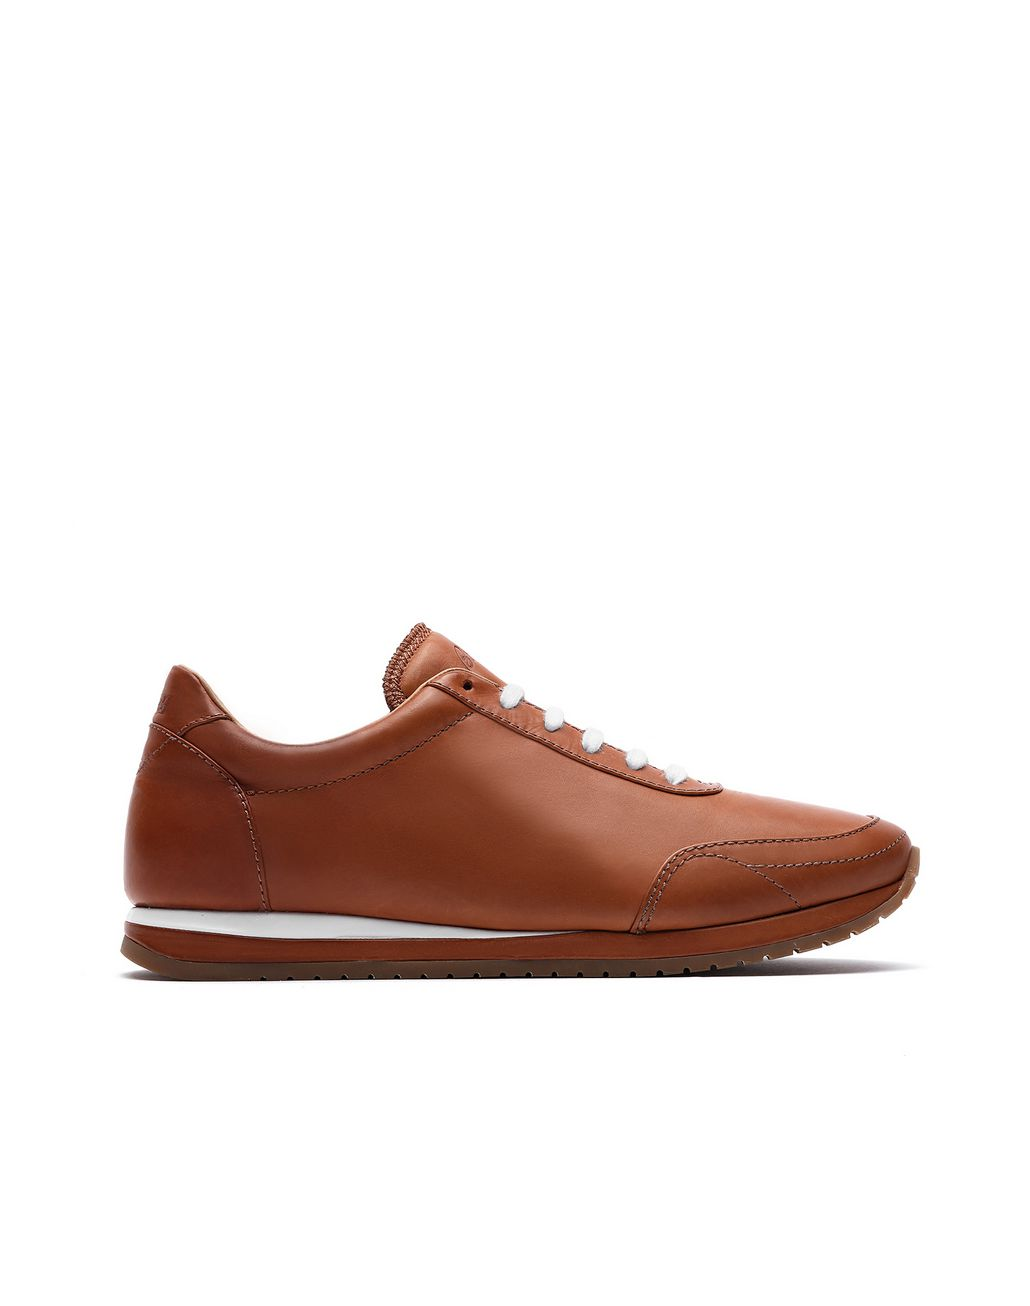 BRIONI Brown and White Runner Sneakers Sneakers Man f